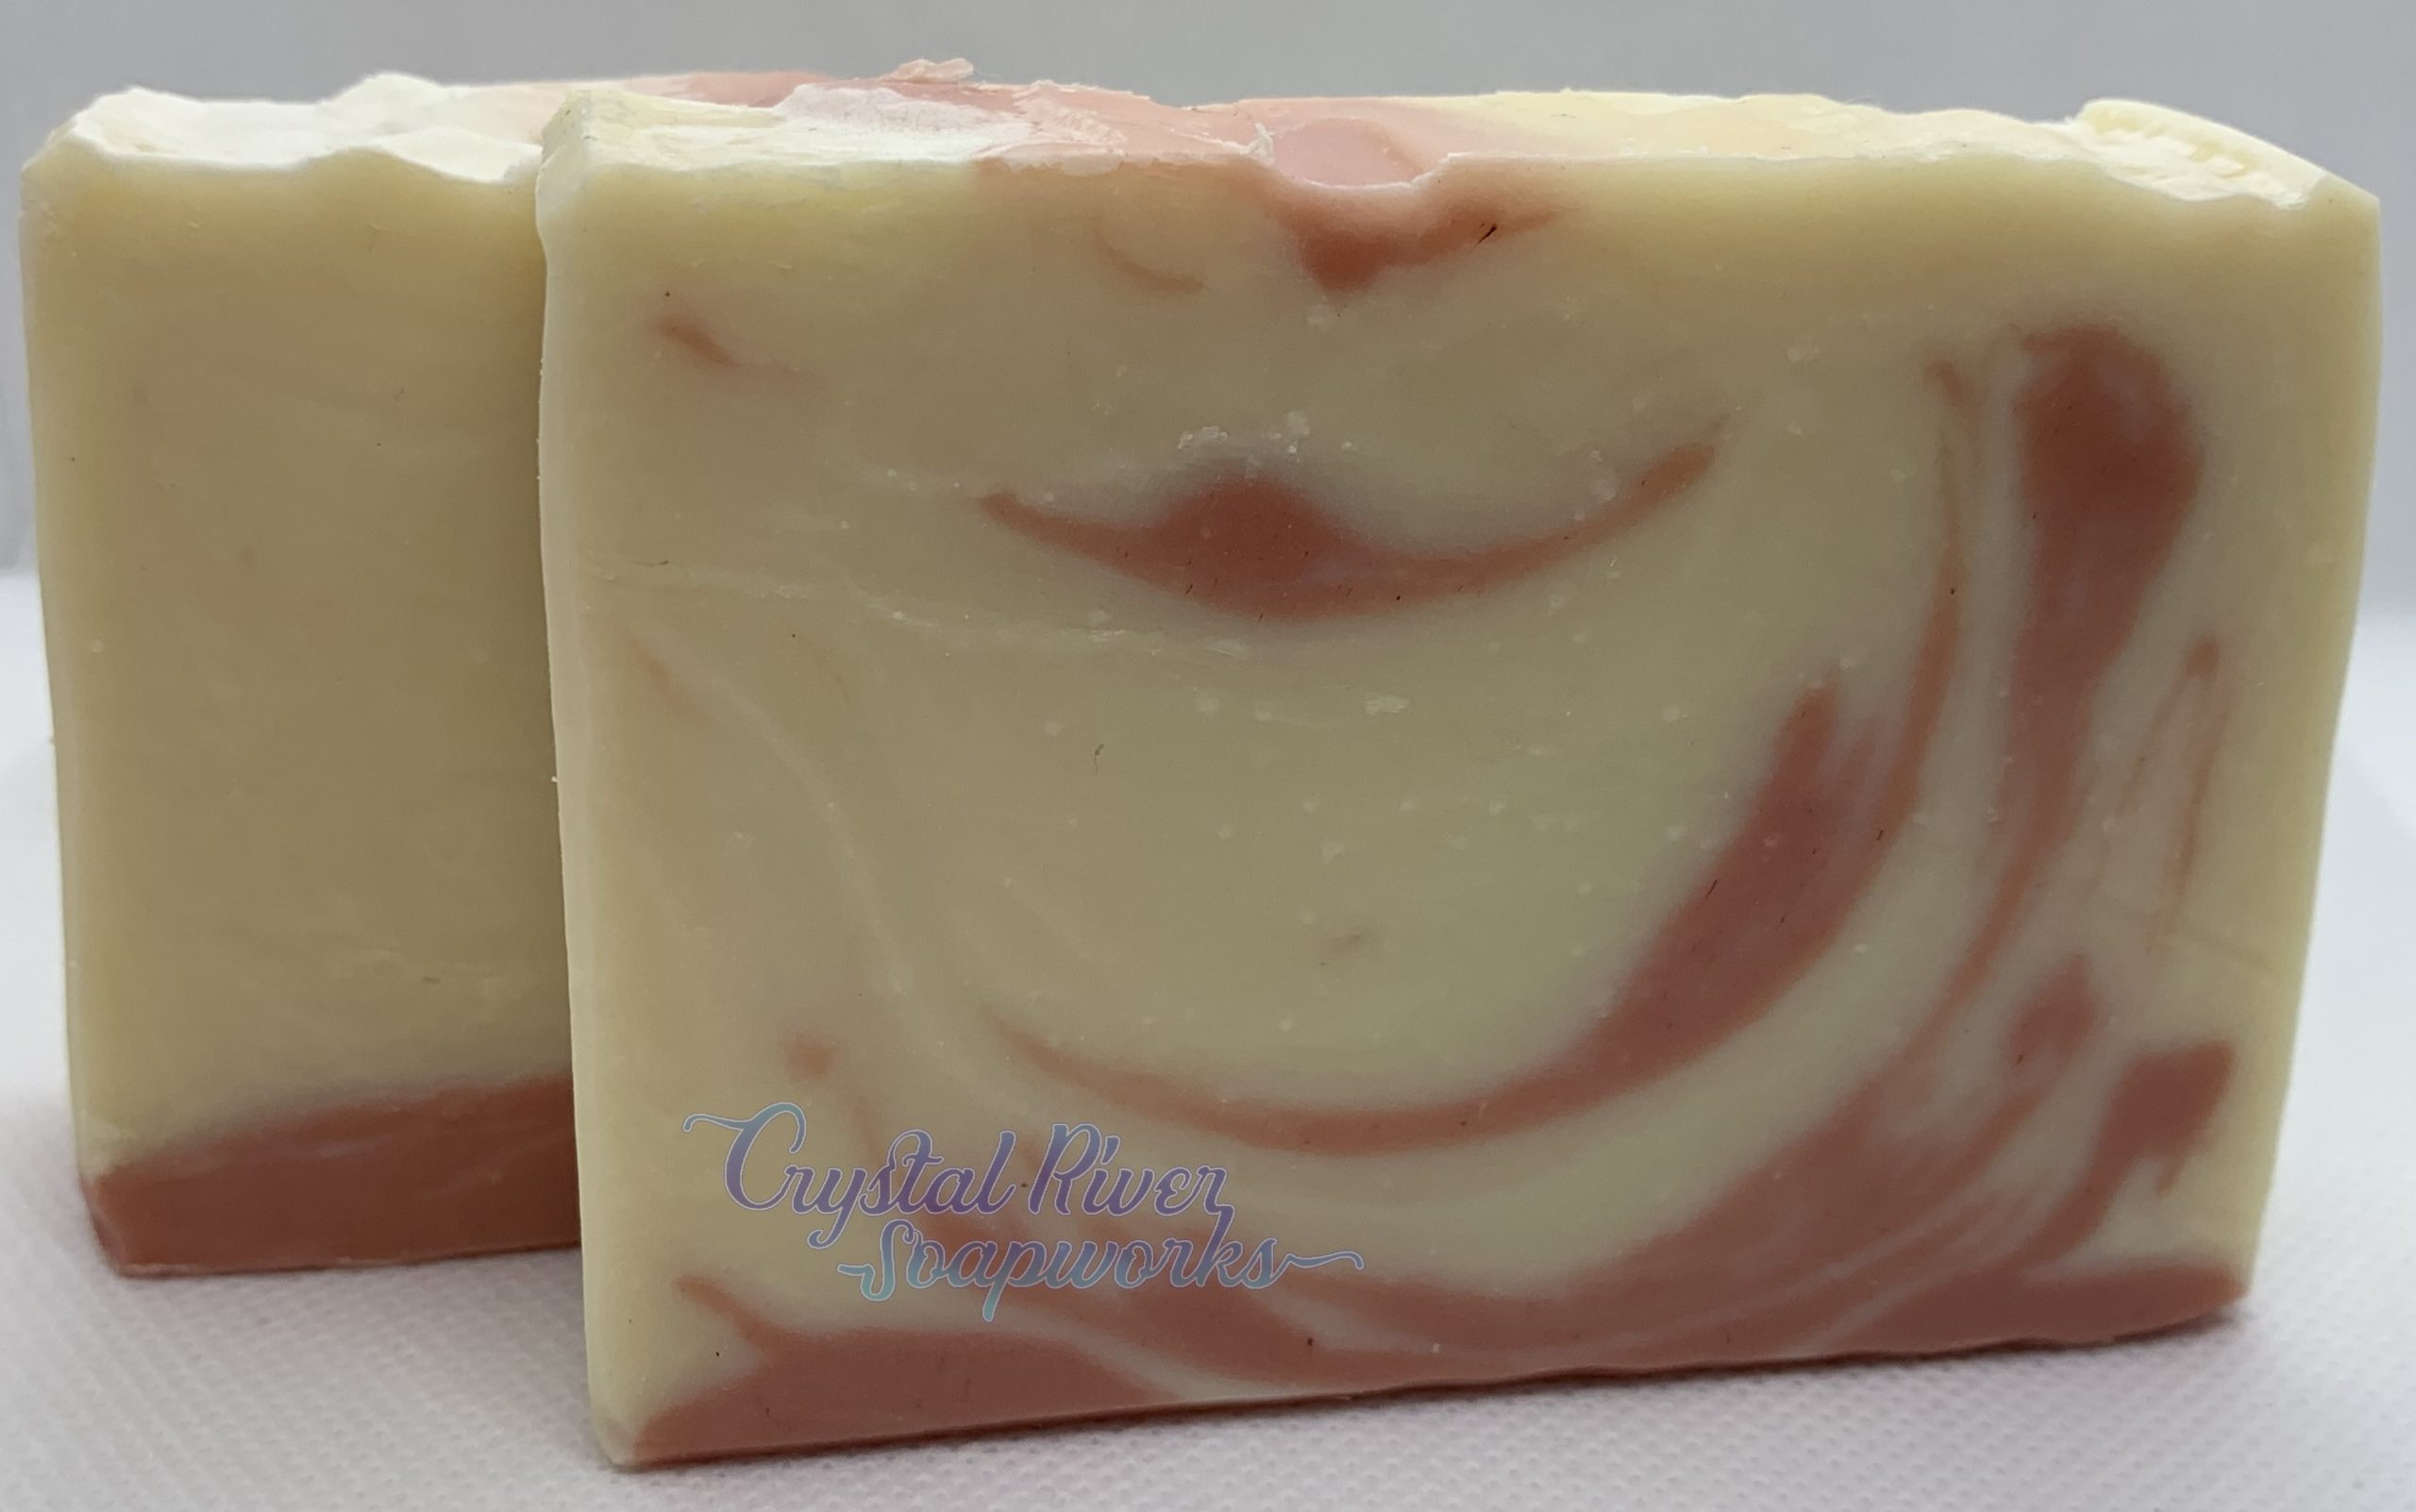 Remove term: All Natural All NaturalRemove term: Coconut Milk Coconut MilkRemove term: Cruelty Free Cruelty FreeRemove term: Essential Oil Essential OilRemove term: Handcrafted HandcraftedRemove term: Lavender LavenderRemove term: Olive Oil Soap Olive Oil SoapRemove term: Rose Kaolin Clay Rose Kaolin Clay